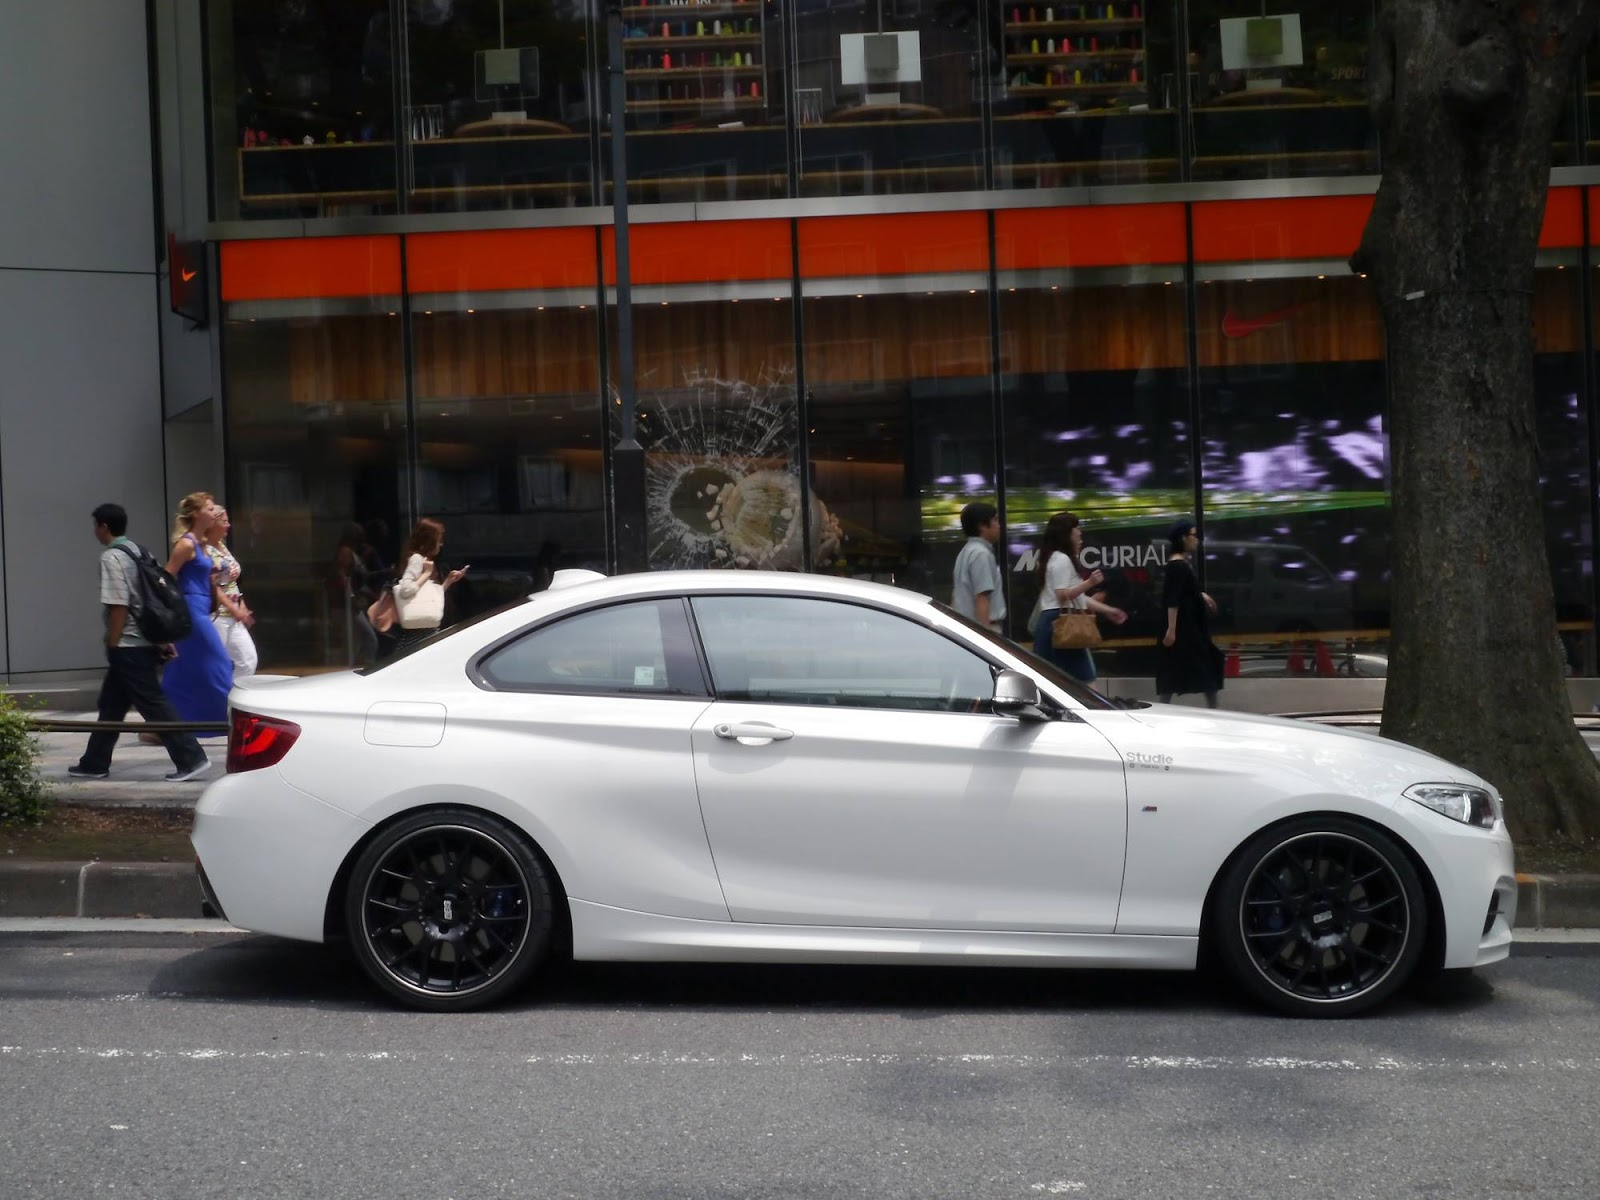 Bmw M235i With E46 M3 Csl Wheels Looks Pretty Kewl Don T